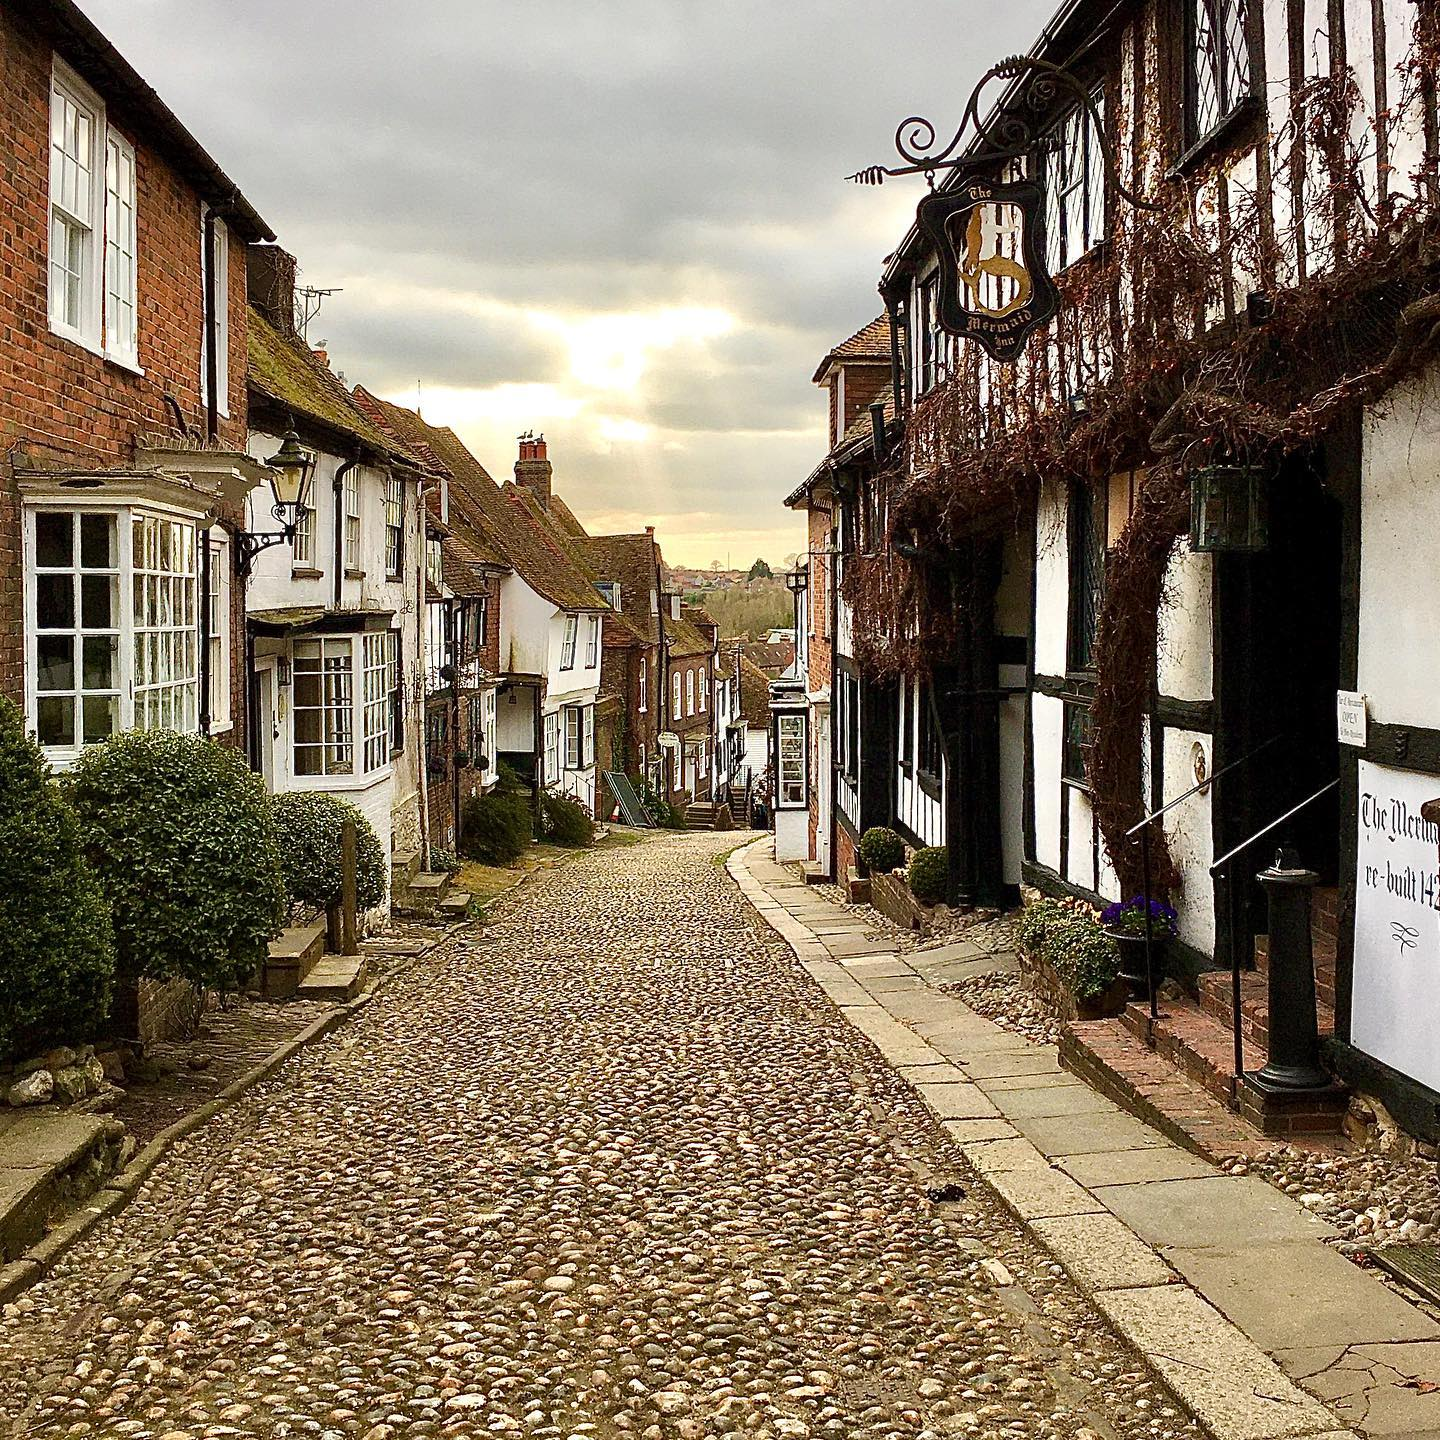 Glancing across the cobblestones of the famous Mermaid Street in Rye, Sussex.   The Mermaid Inn, established in 1156 and rebuilt in 1420, is one of the most significant structures in this quaint Medieval fishing village.  #rye #sussex #england #history #architecture #medieval #pub #iconic #village #villagepub #photography #outdoors #beautiful #cobblestone #story #sun #sunshine #tourism #uk